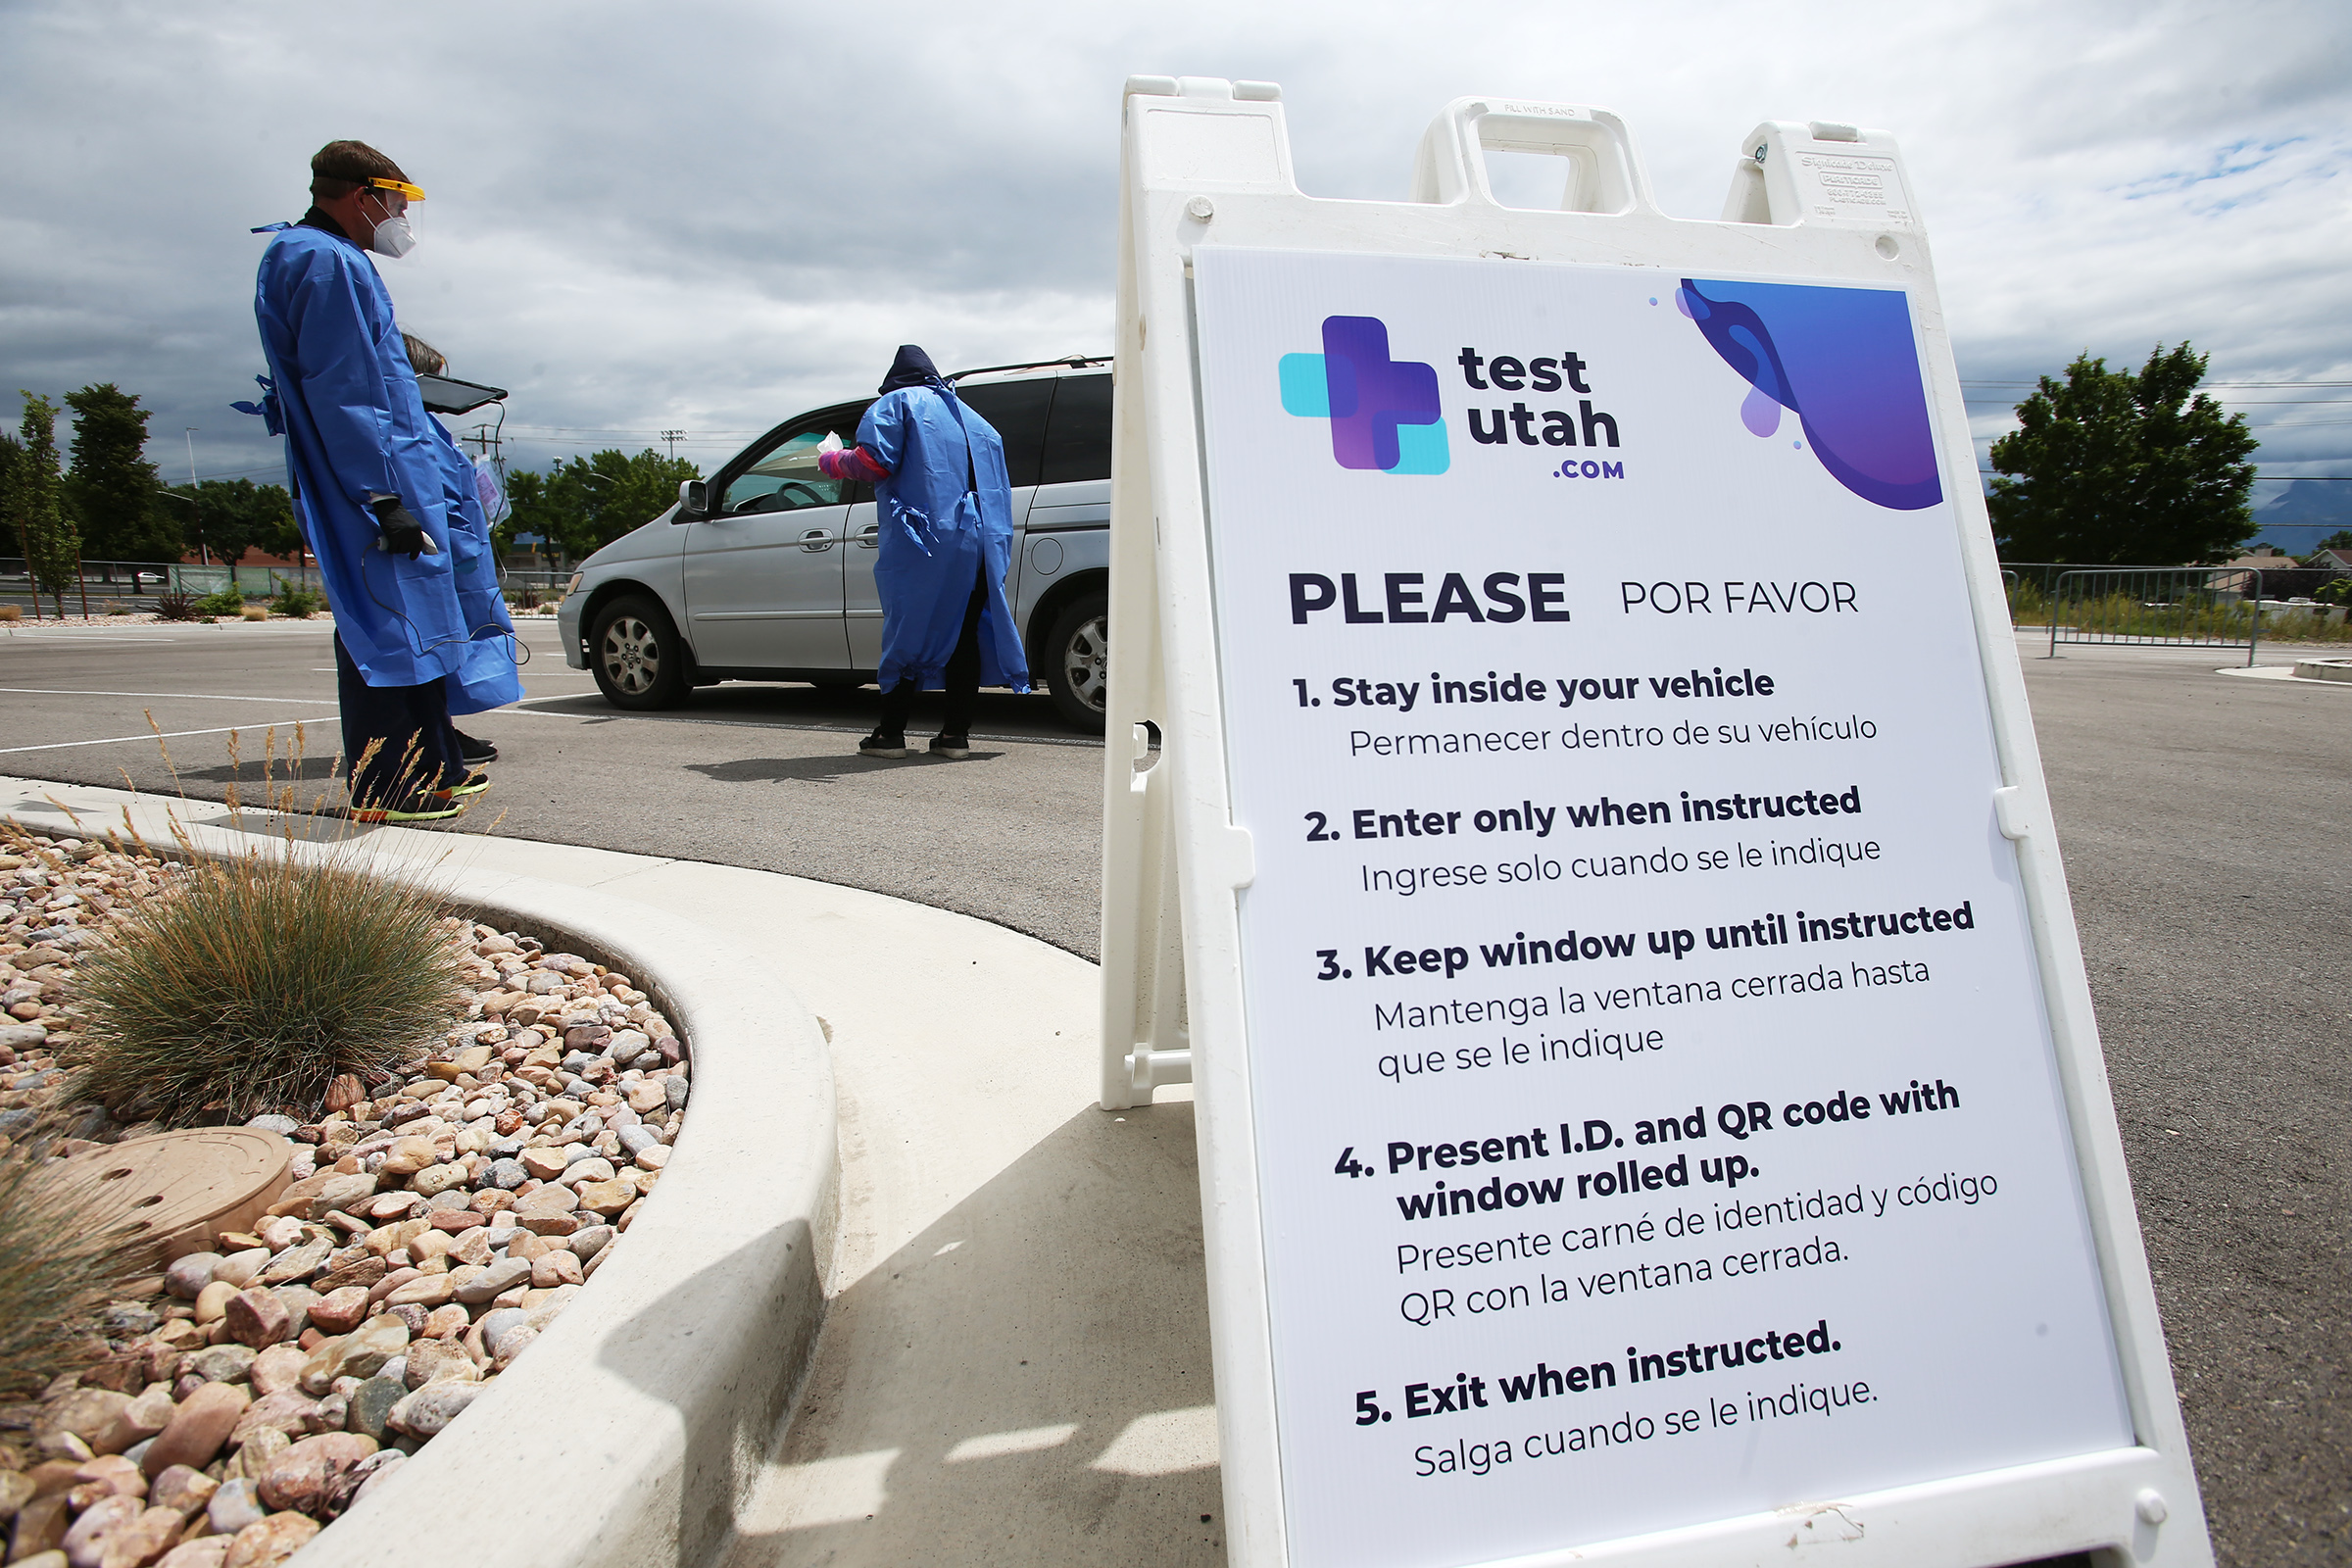 TestUtah workers conduct COVID-19 testing at a site near the Utah Olympic Oval in Kearns on Tuesday, June 30, 2020.